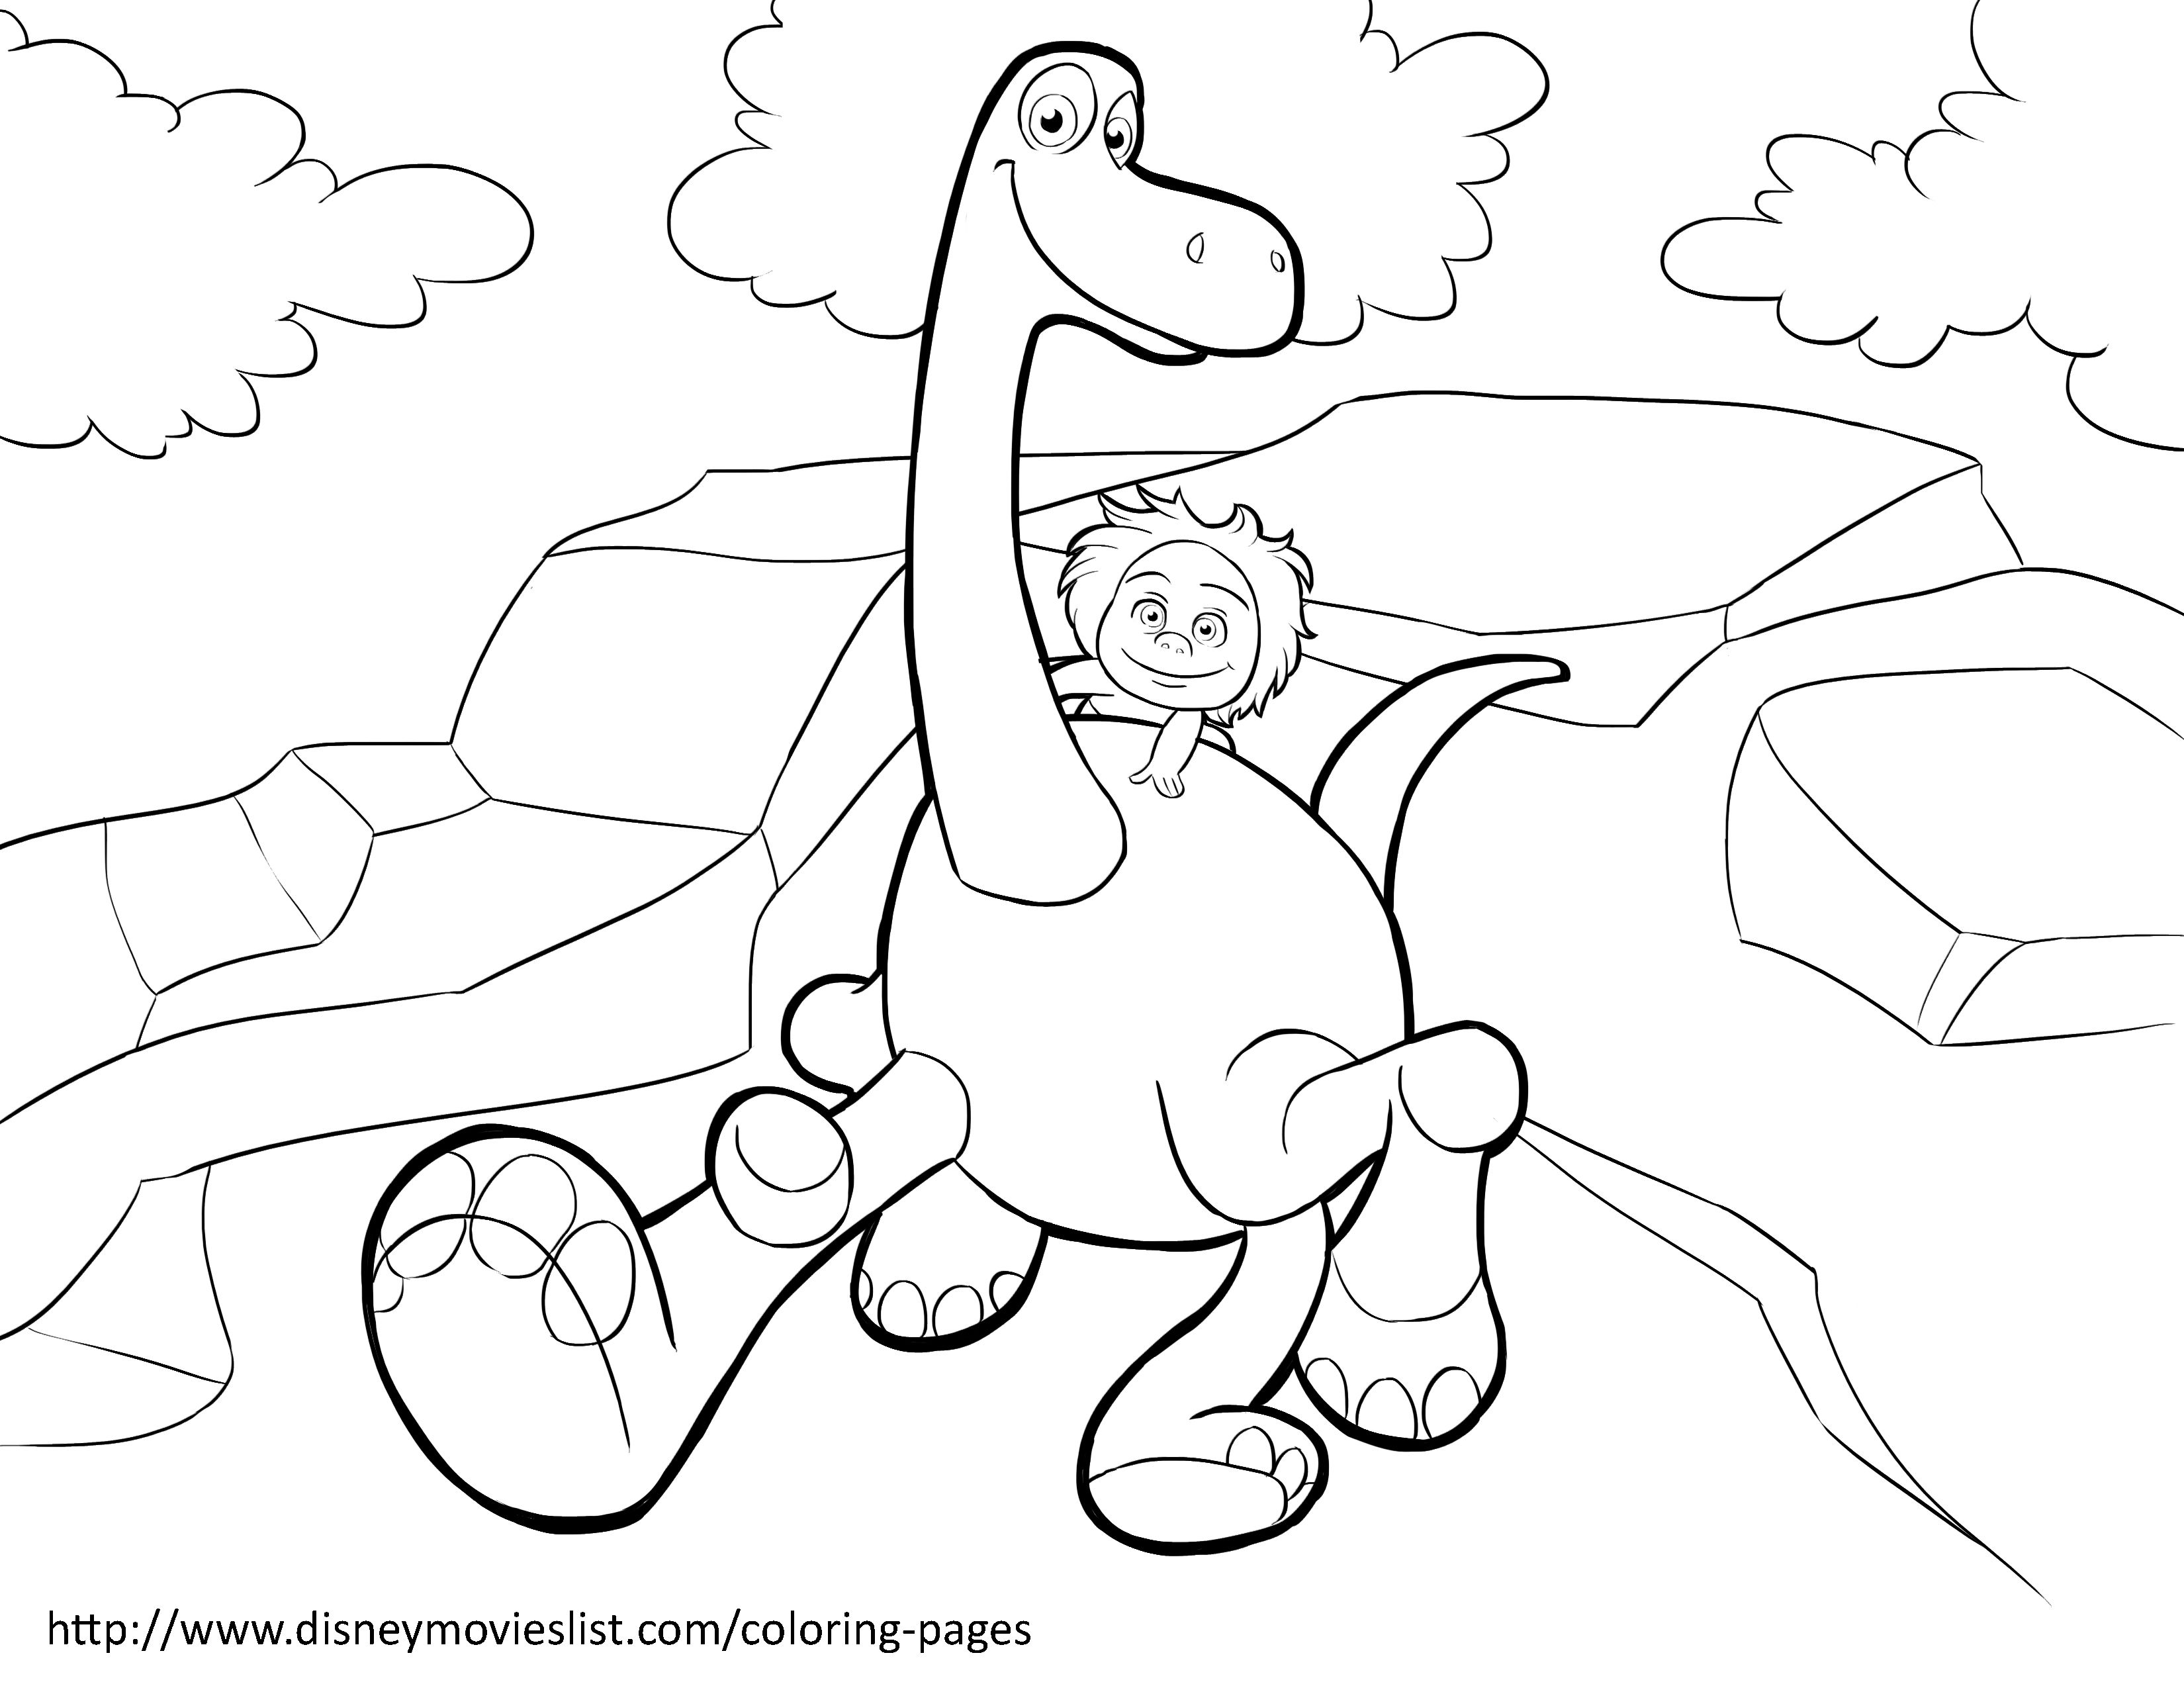 Free coloring book pages dinosaurs - Disney S The Good Dinosaur Coloring Pages Sheet Free Disney Printable The Good Dinosaur Color Page